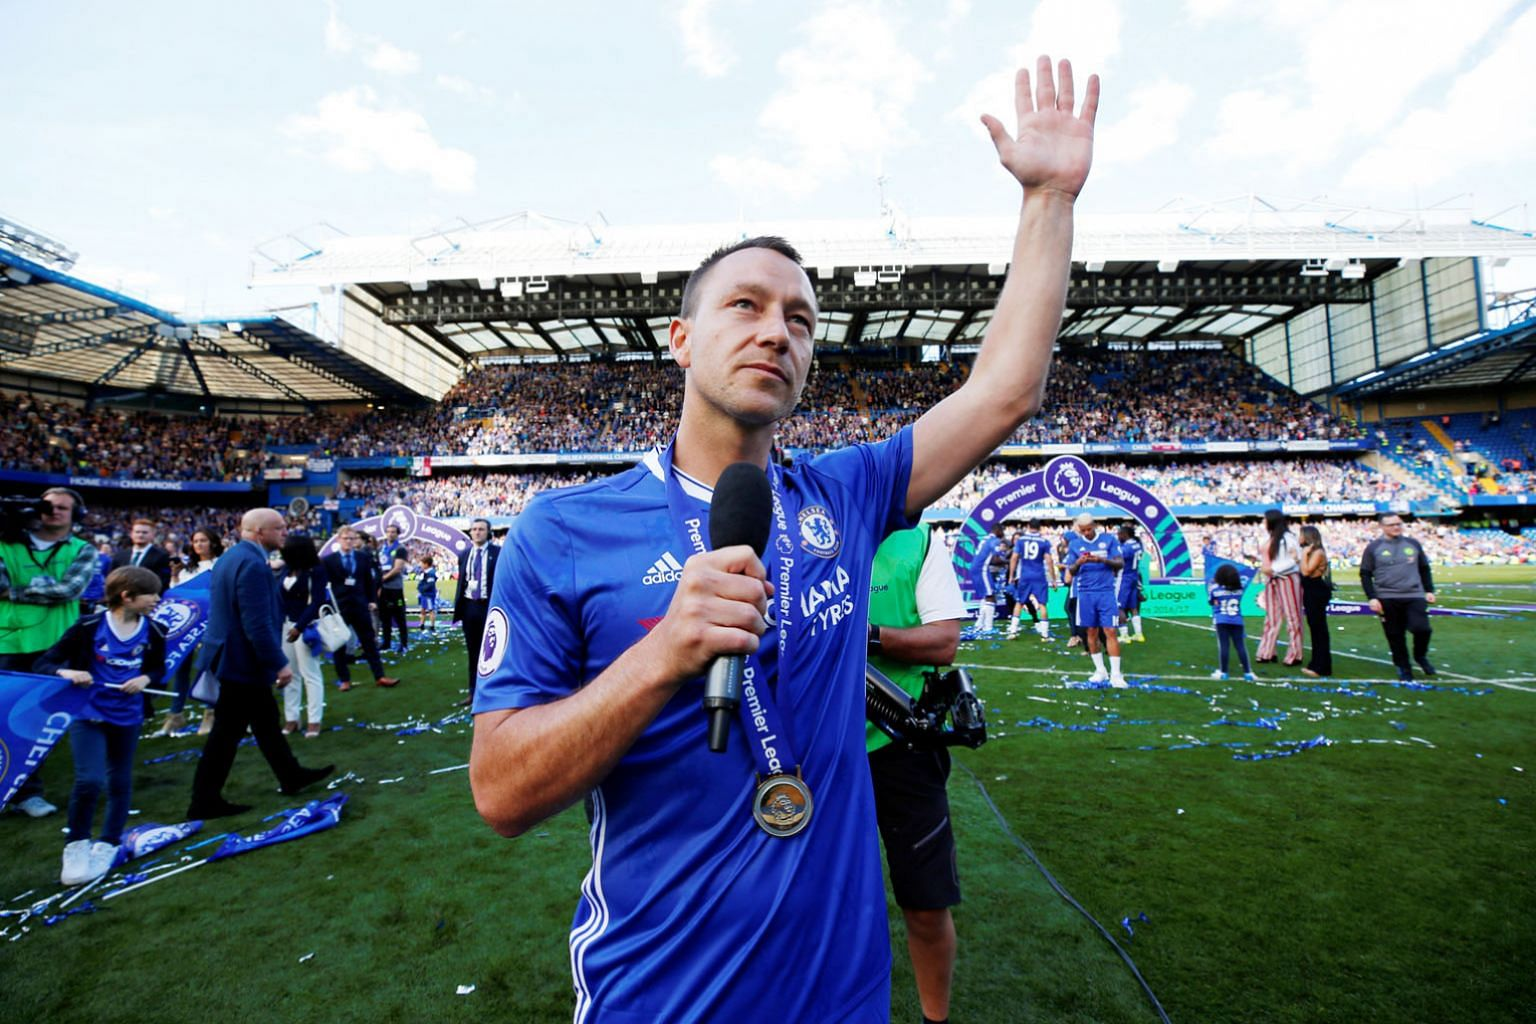 John Terry acknowledging the crowd after making a speech at the end of his last game for Chelsea, against Sunderland on Sunday. Thousands of pounds were won in bets on Terry being substituted in the 26th minute, to match his shirt number.